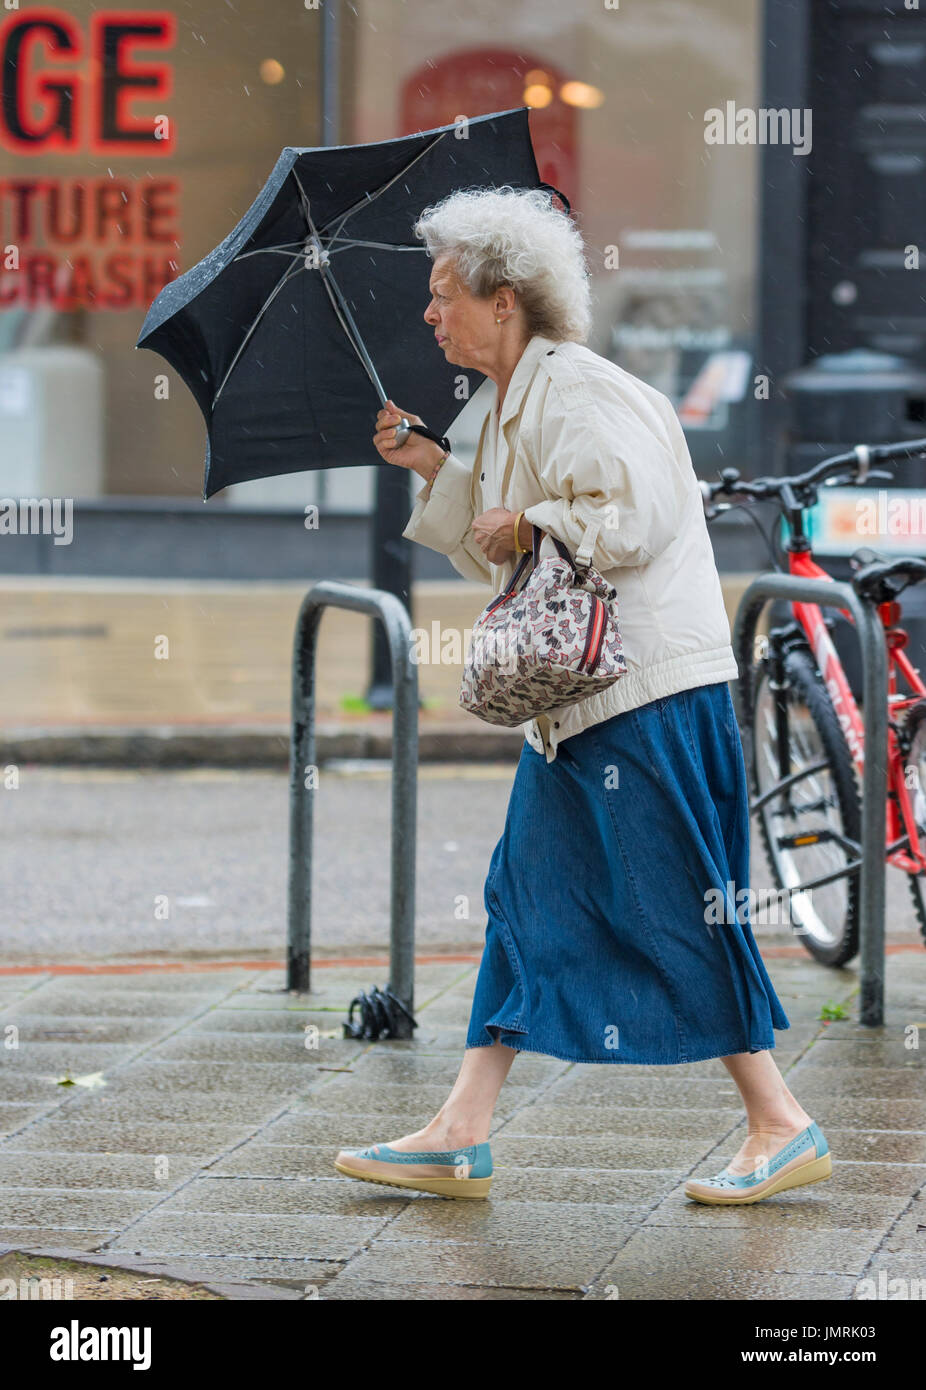 Elderly lady woman in the rain and wind holding an umbrella. - Stock Image